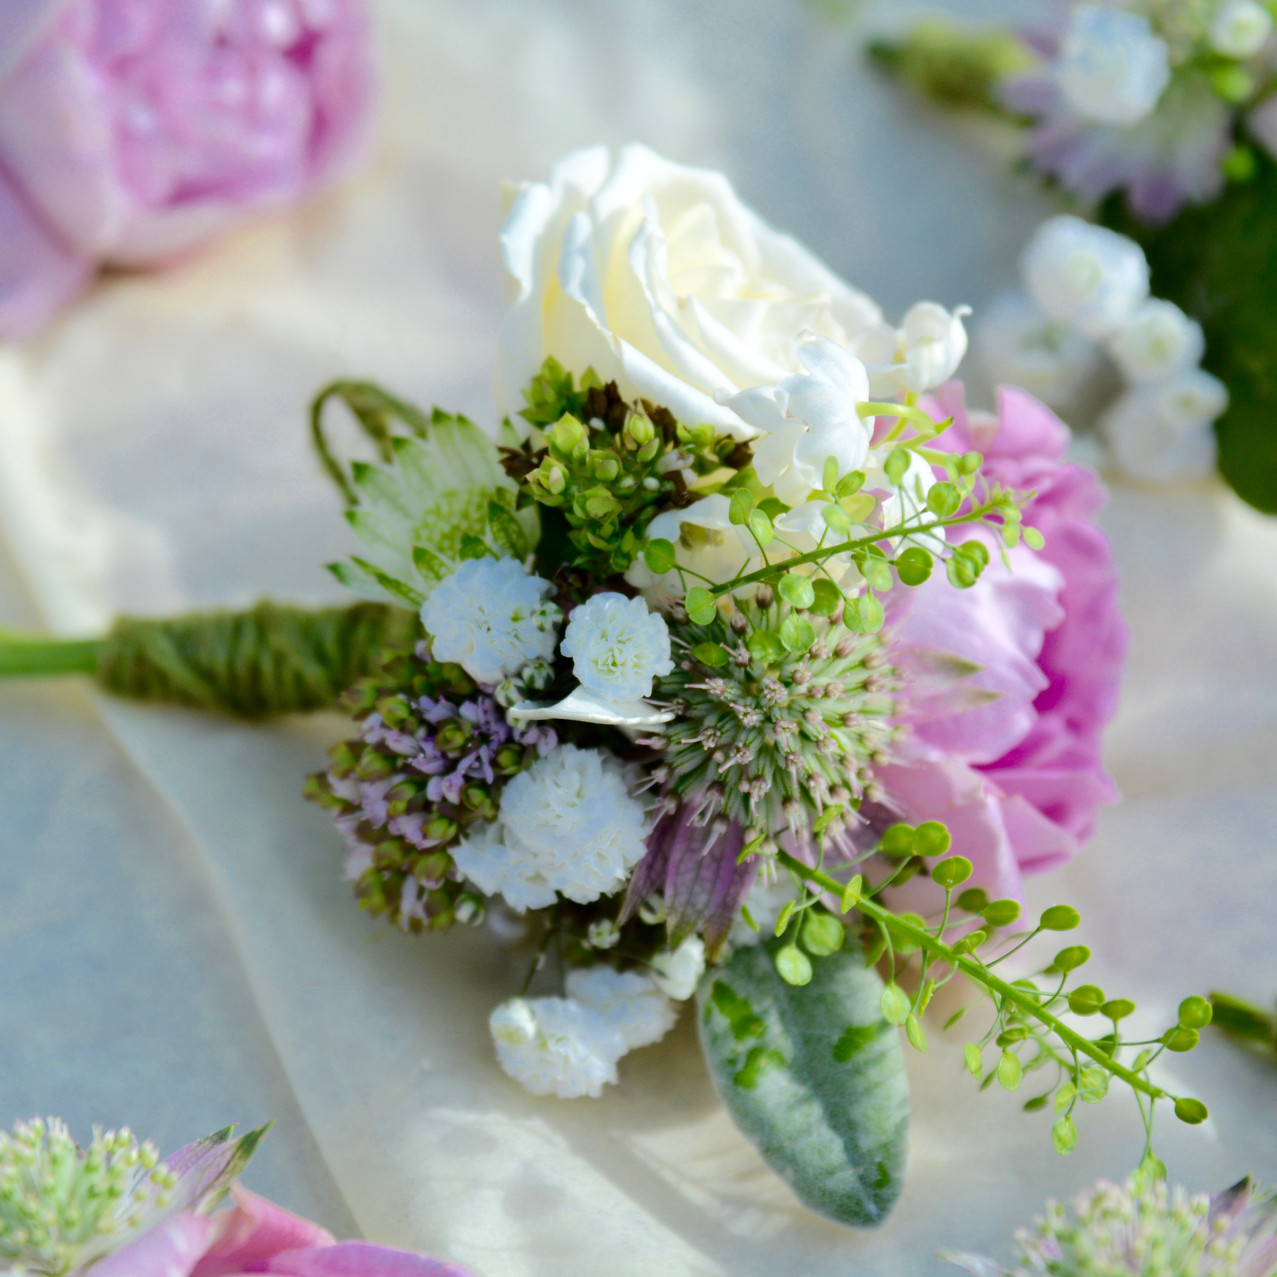 Blush pink spray rose buttonhole dressed with Lily of the Valley, ivory spray rose, oregano, thylaspi, astrantia